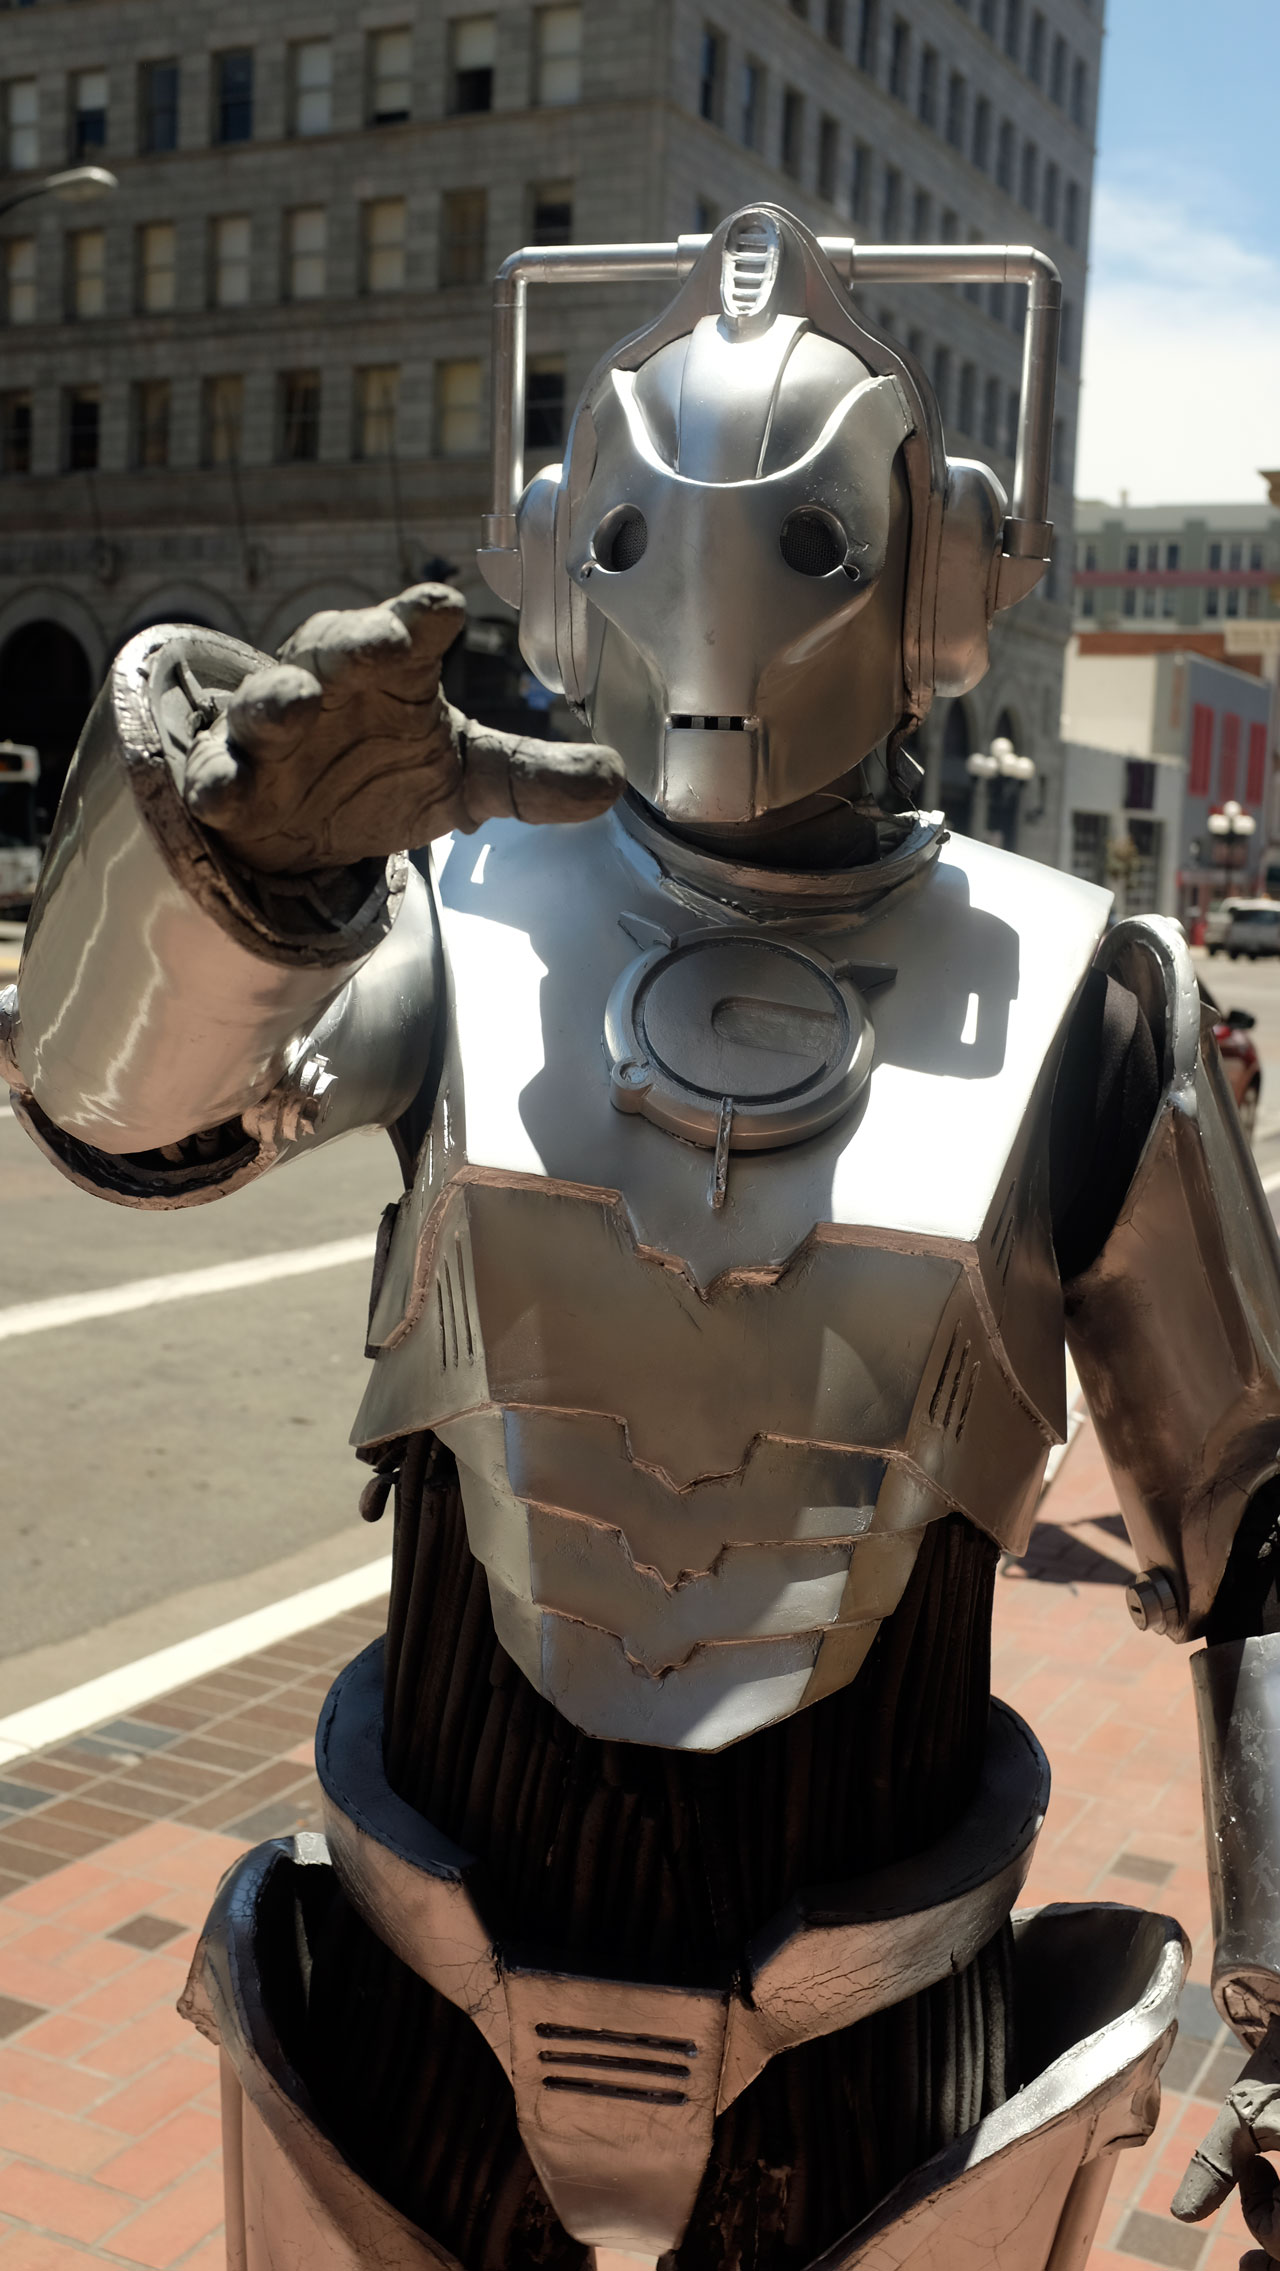 This Cyberman won Best Cosplay at the 'Doctor Who' fan meet up? But is it really cosplay... (Photo: Kevin Wicks/BBC AMERICA)